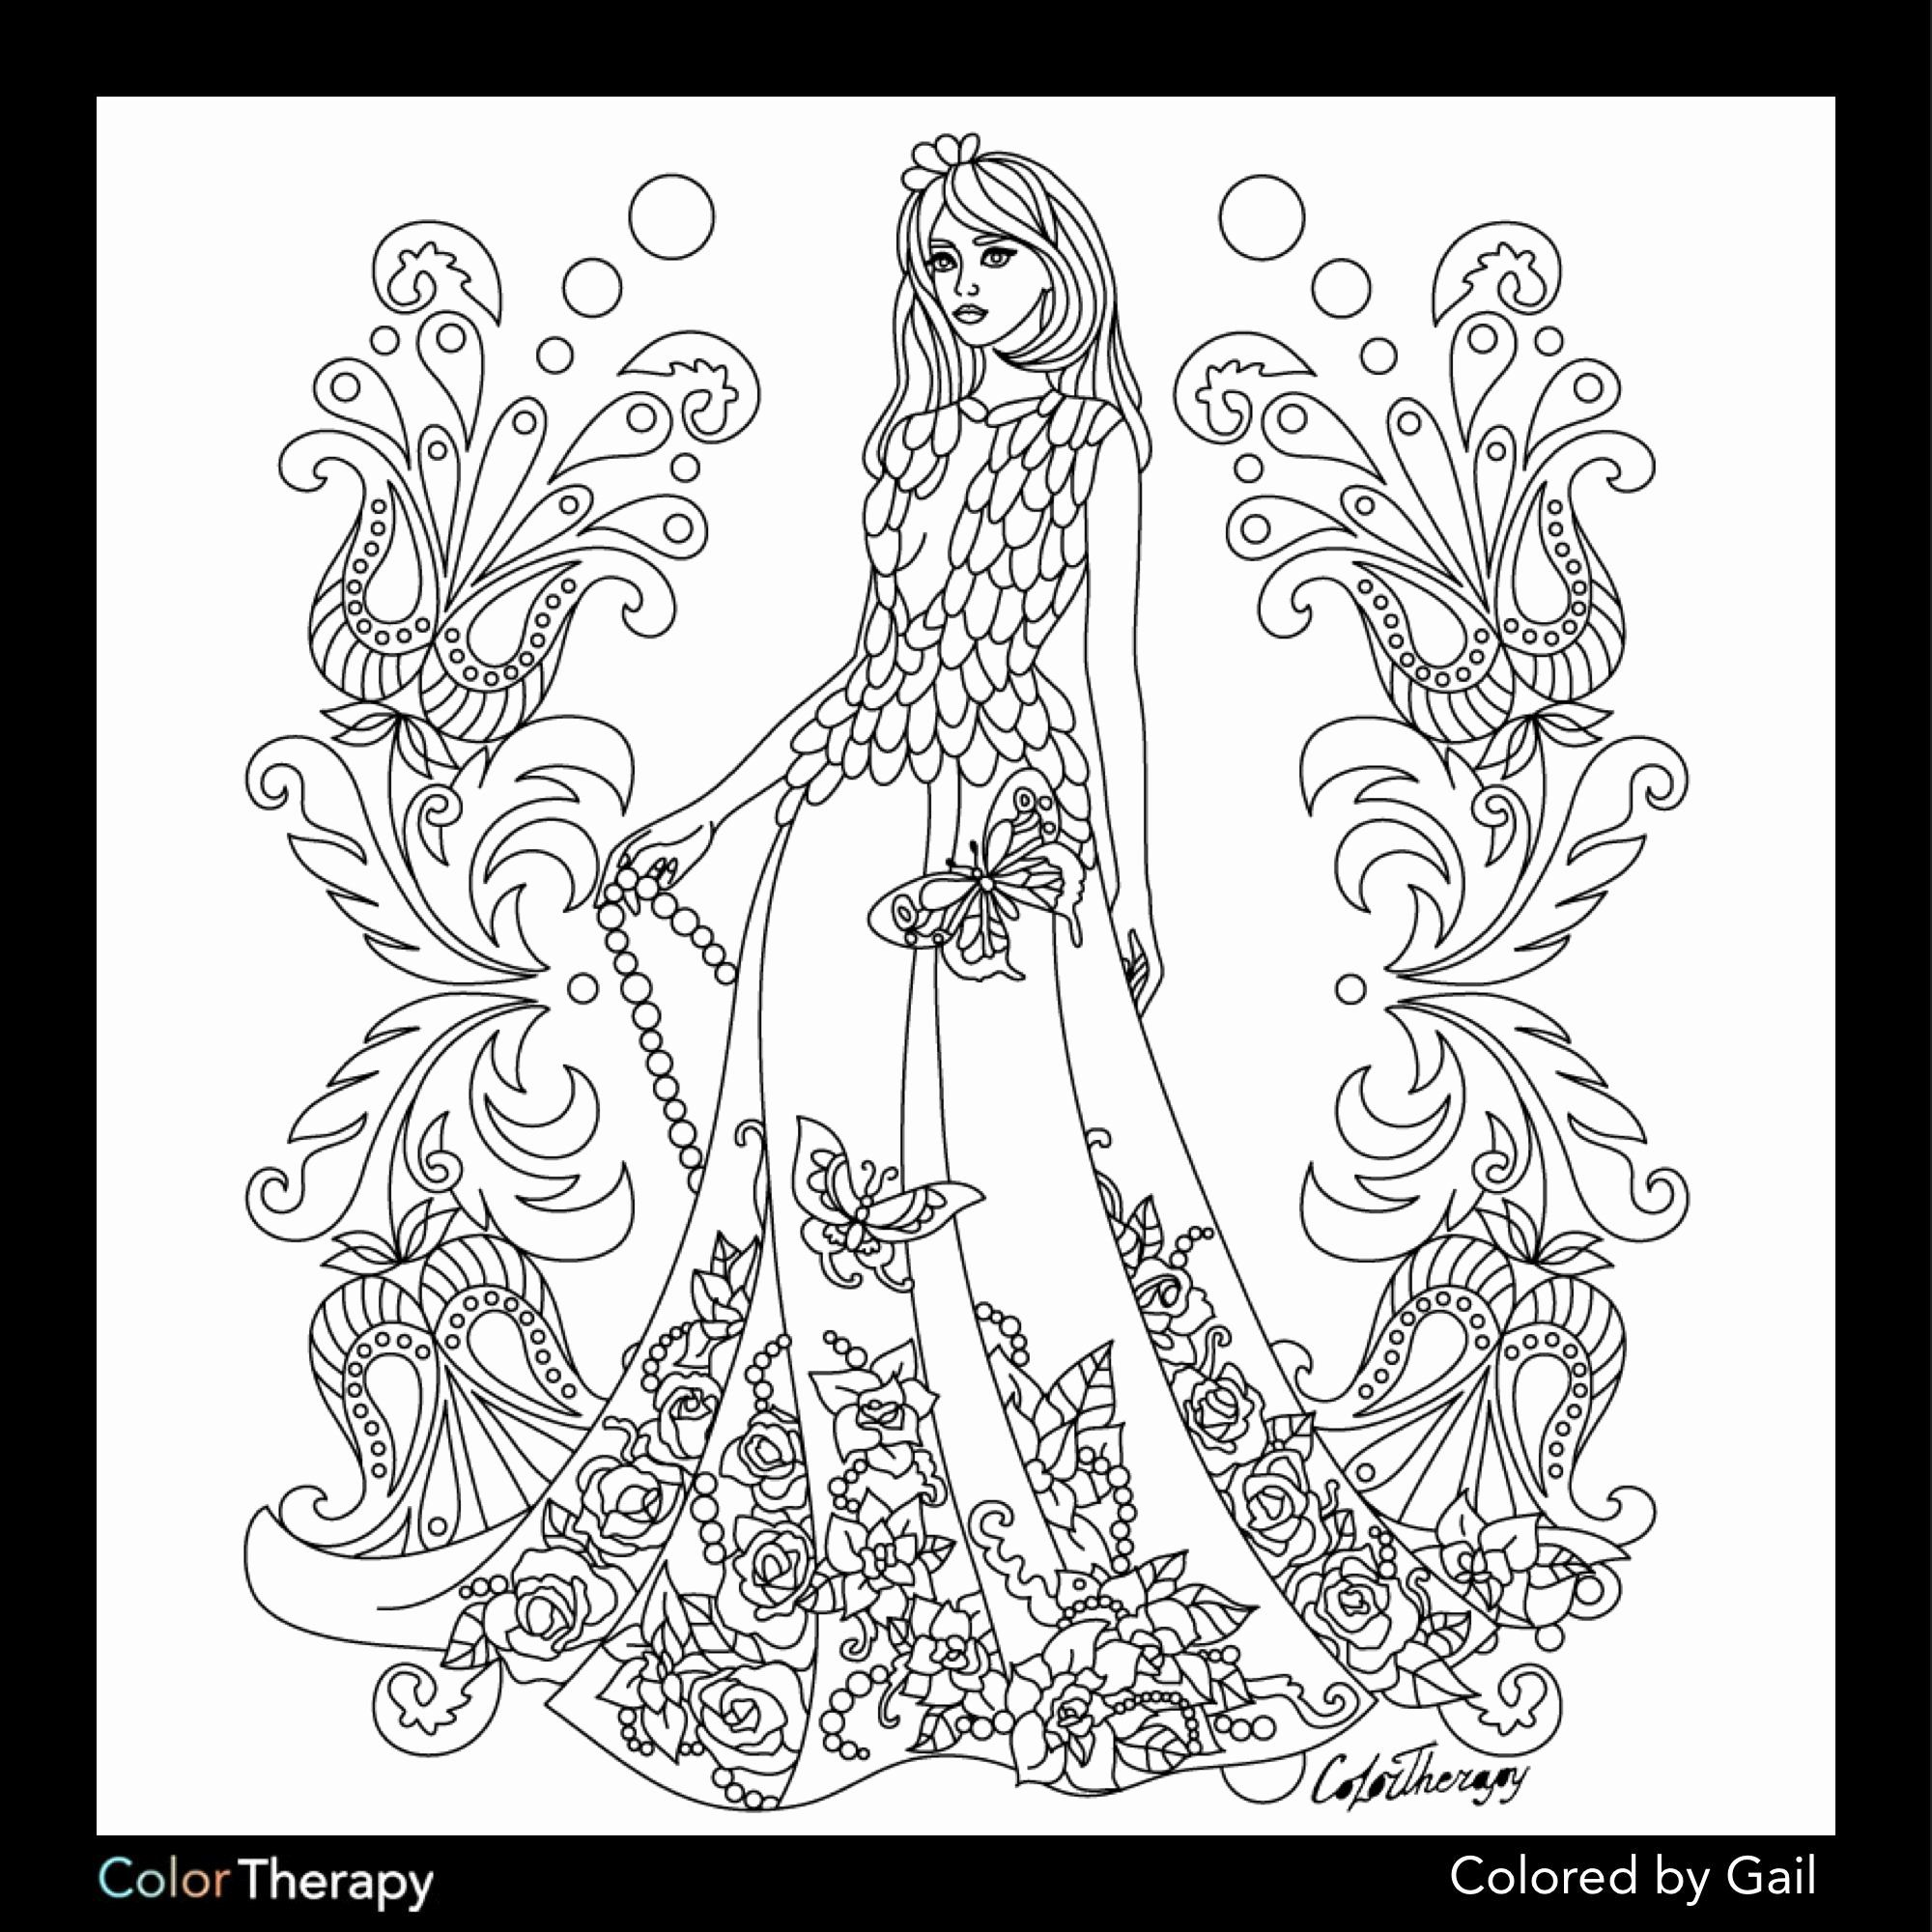 Pin By Joanne K On Colortherapy In 2020 Coloring Books Cute Coloring Pages Coloring Pages